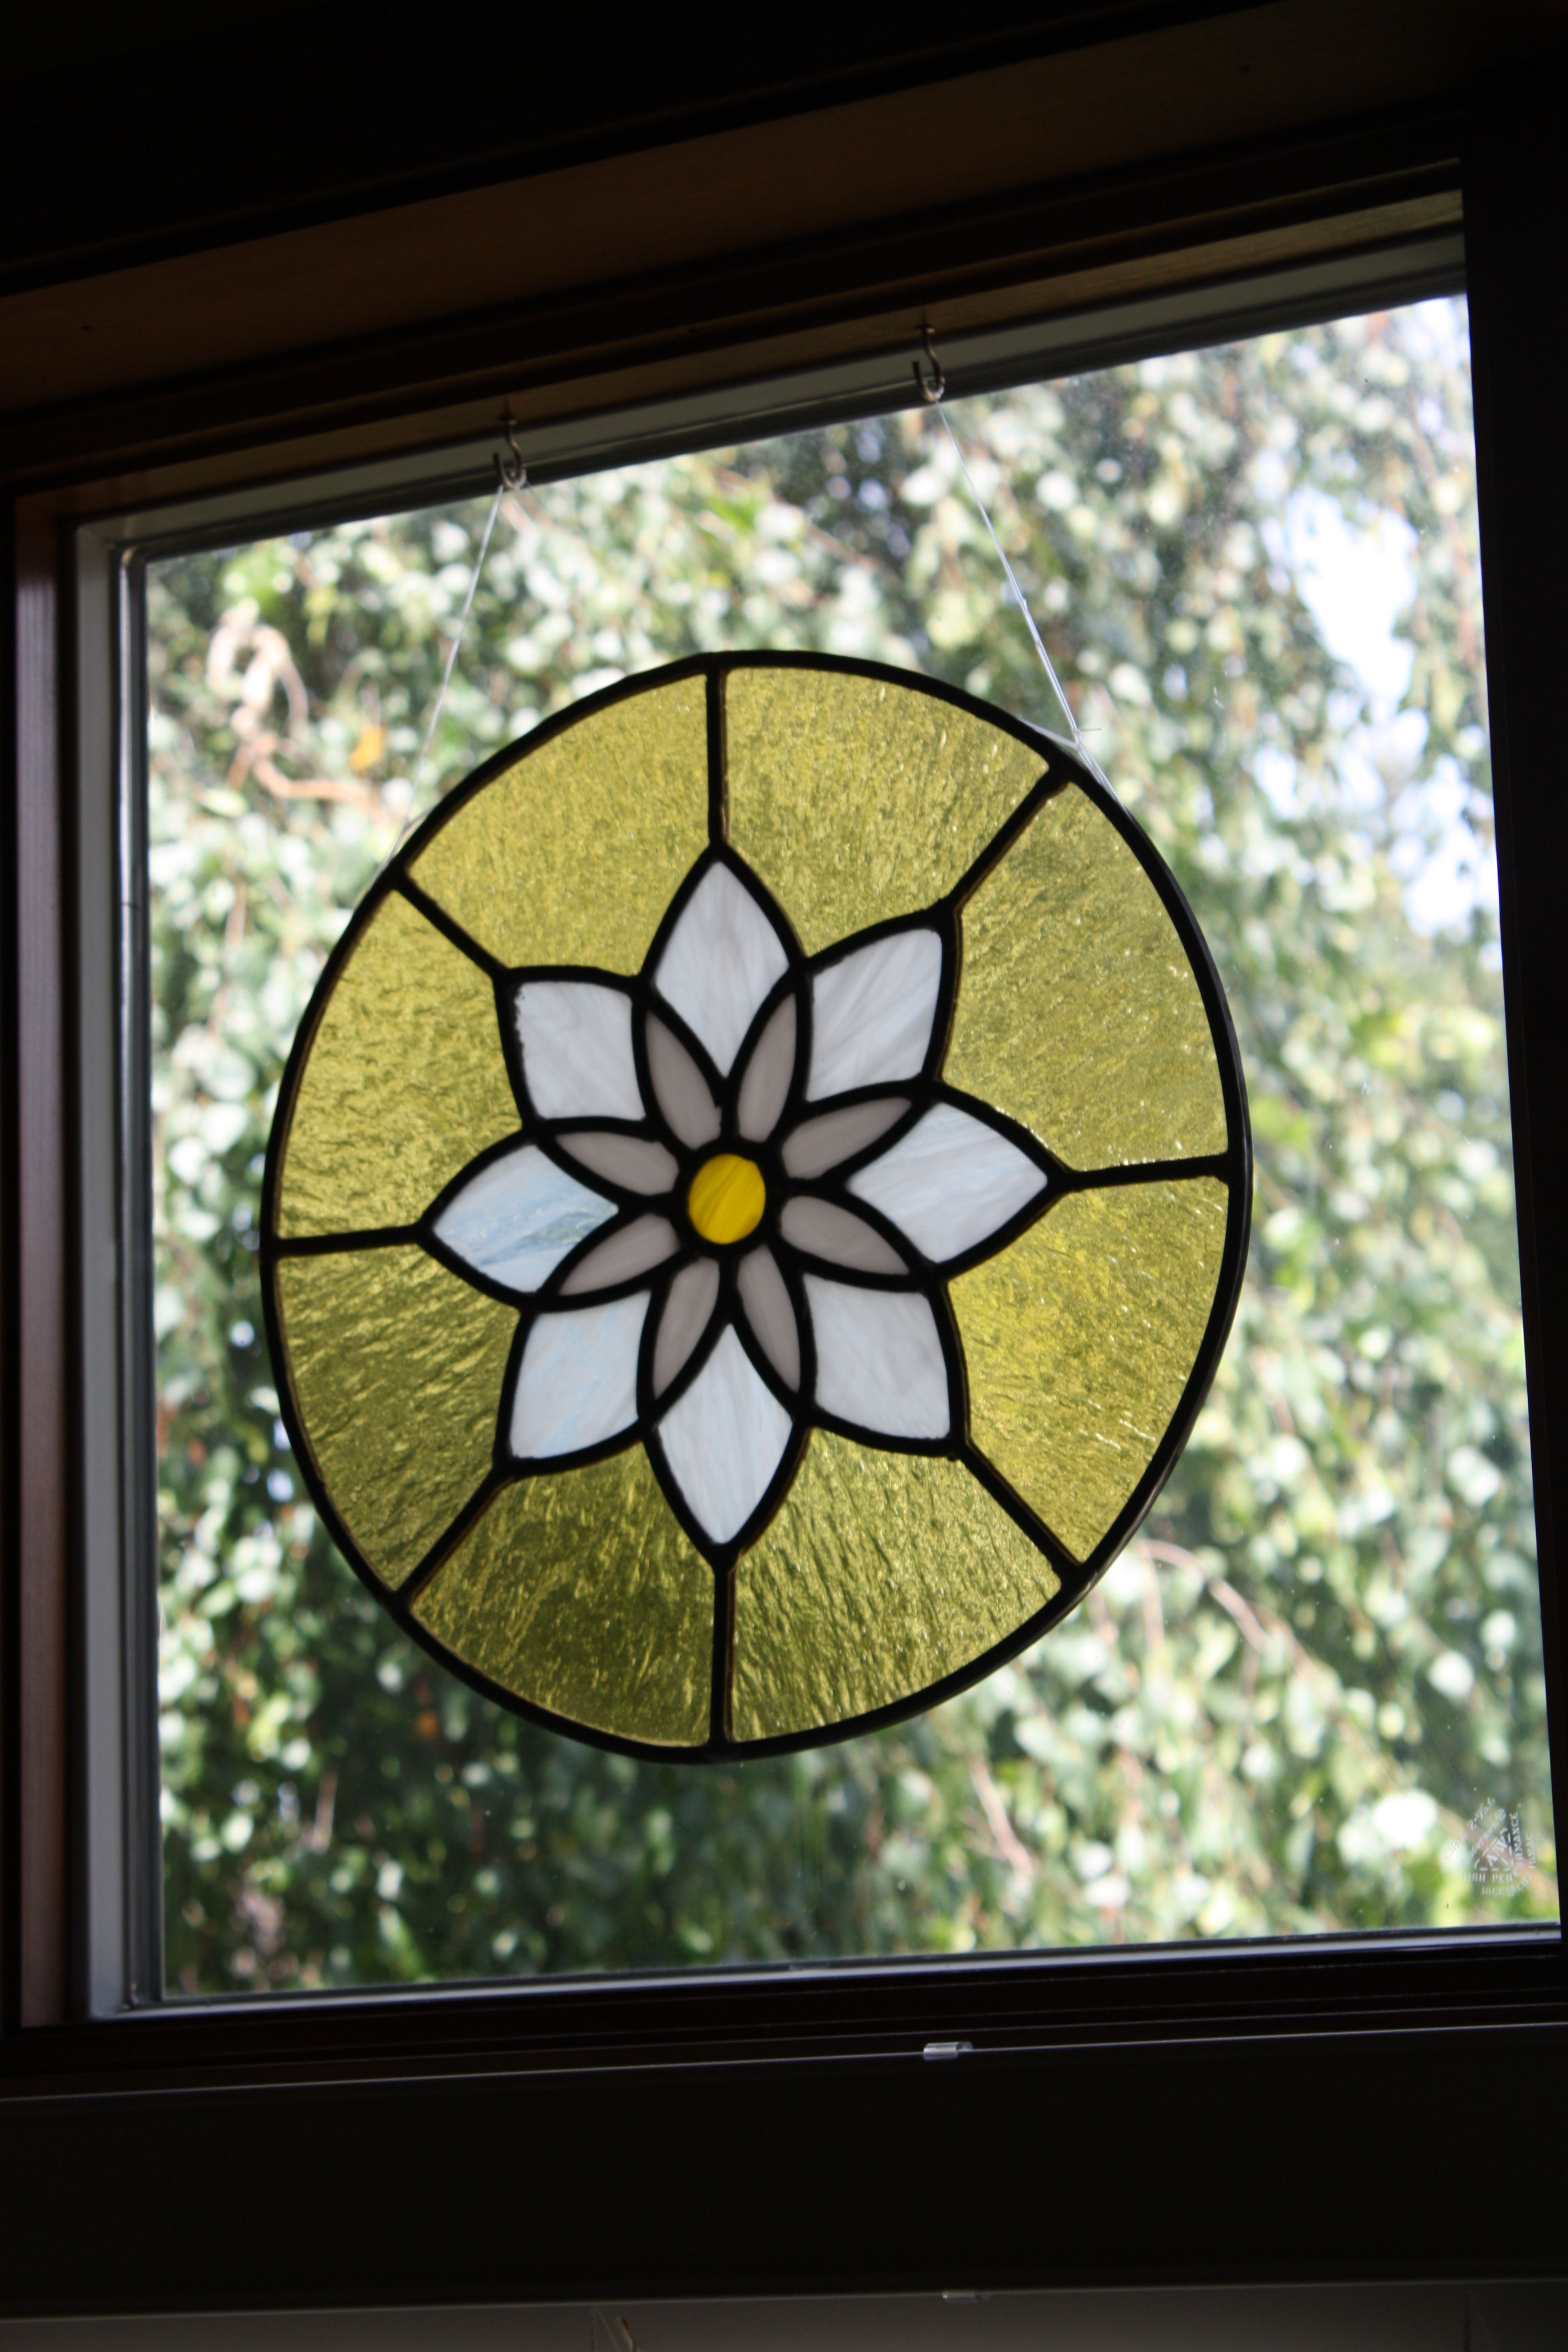 He makes amazing stained glass!